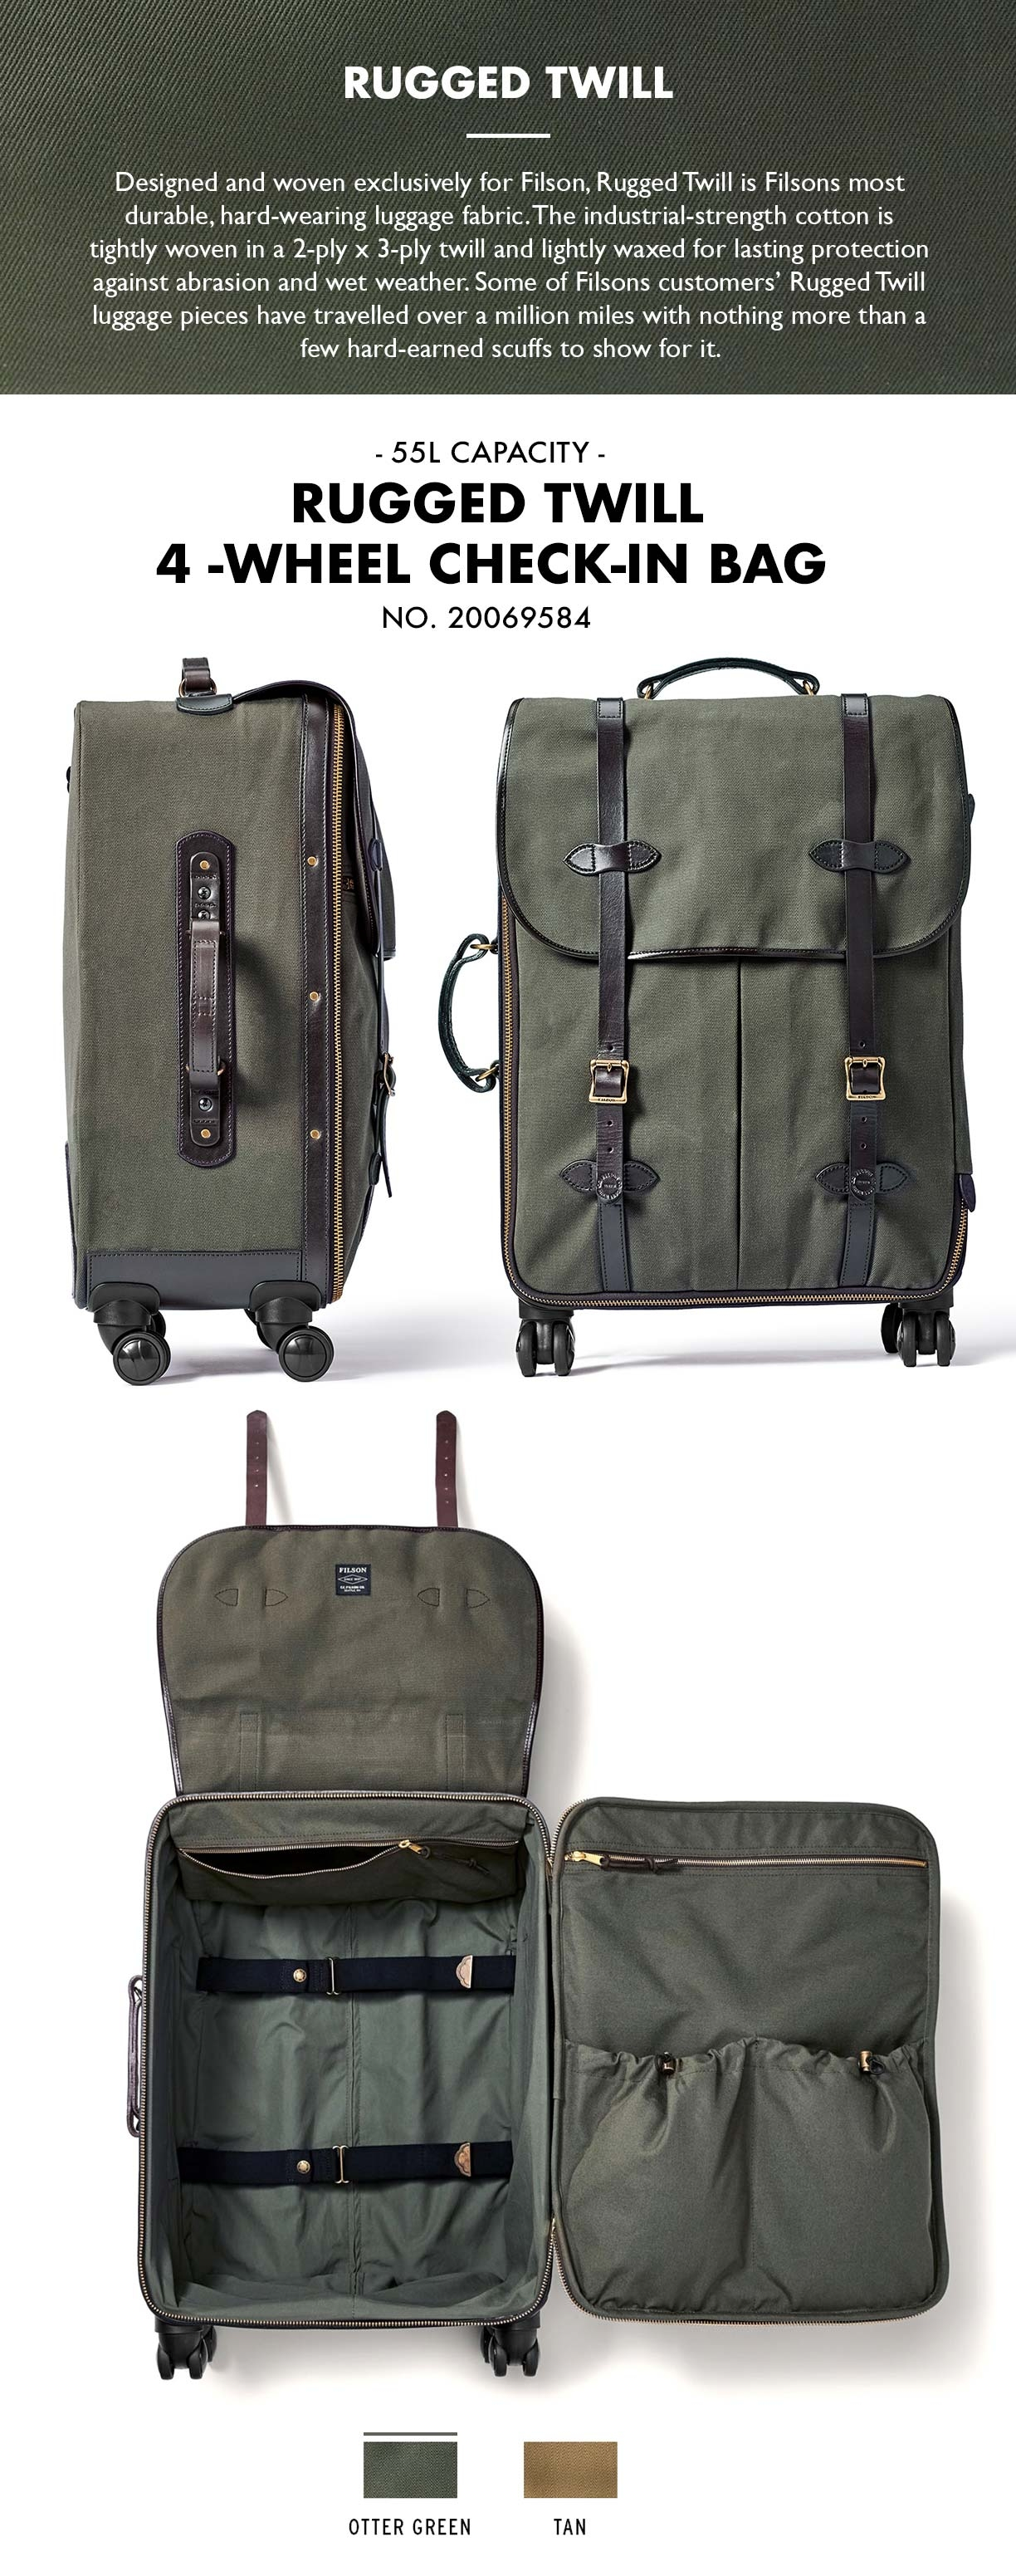 Filson Rolling 4-Wheel Check-In Bag Otter Green Product-information